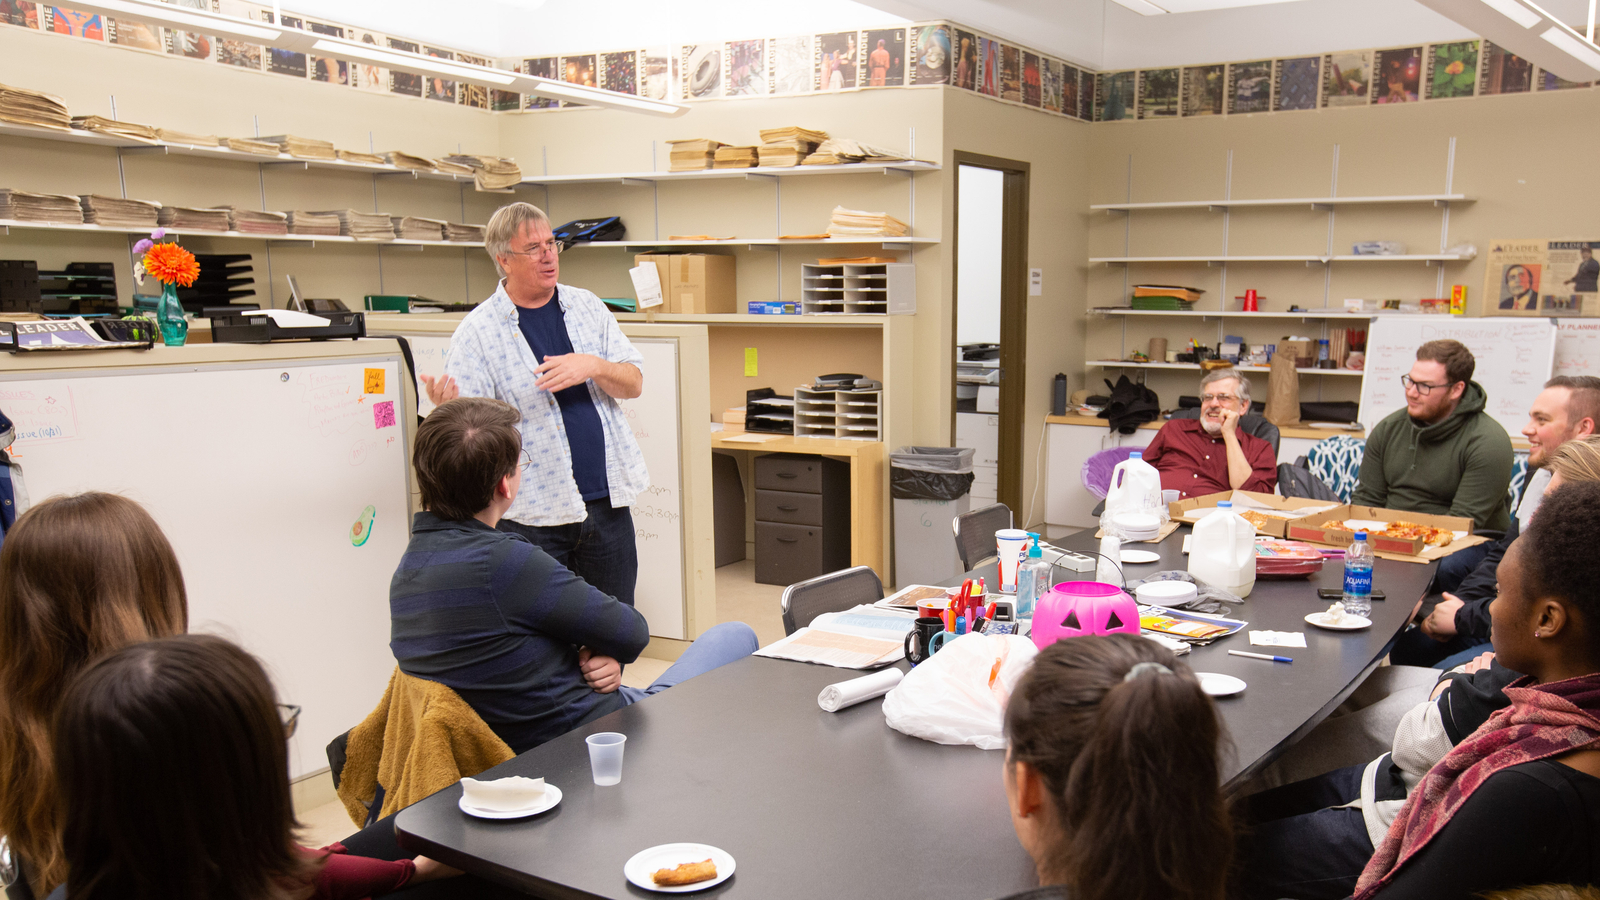 Scott Martelle, '84, works with students at The Leader newspaper